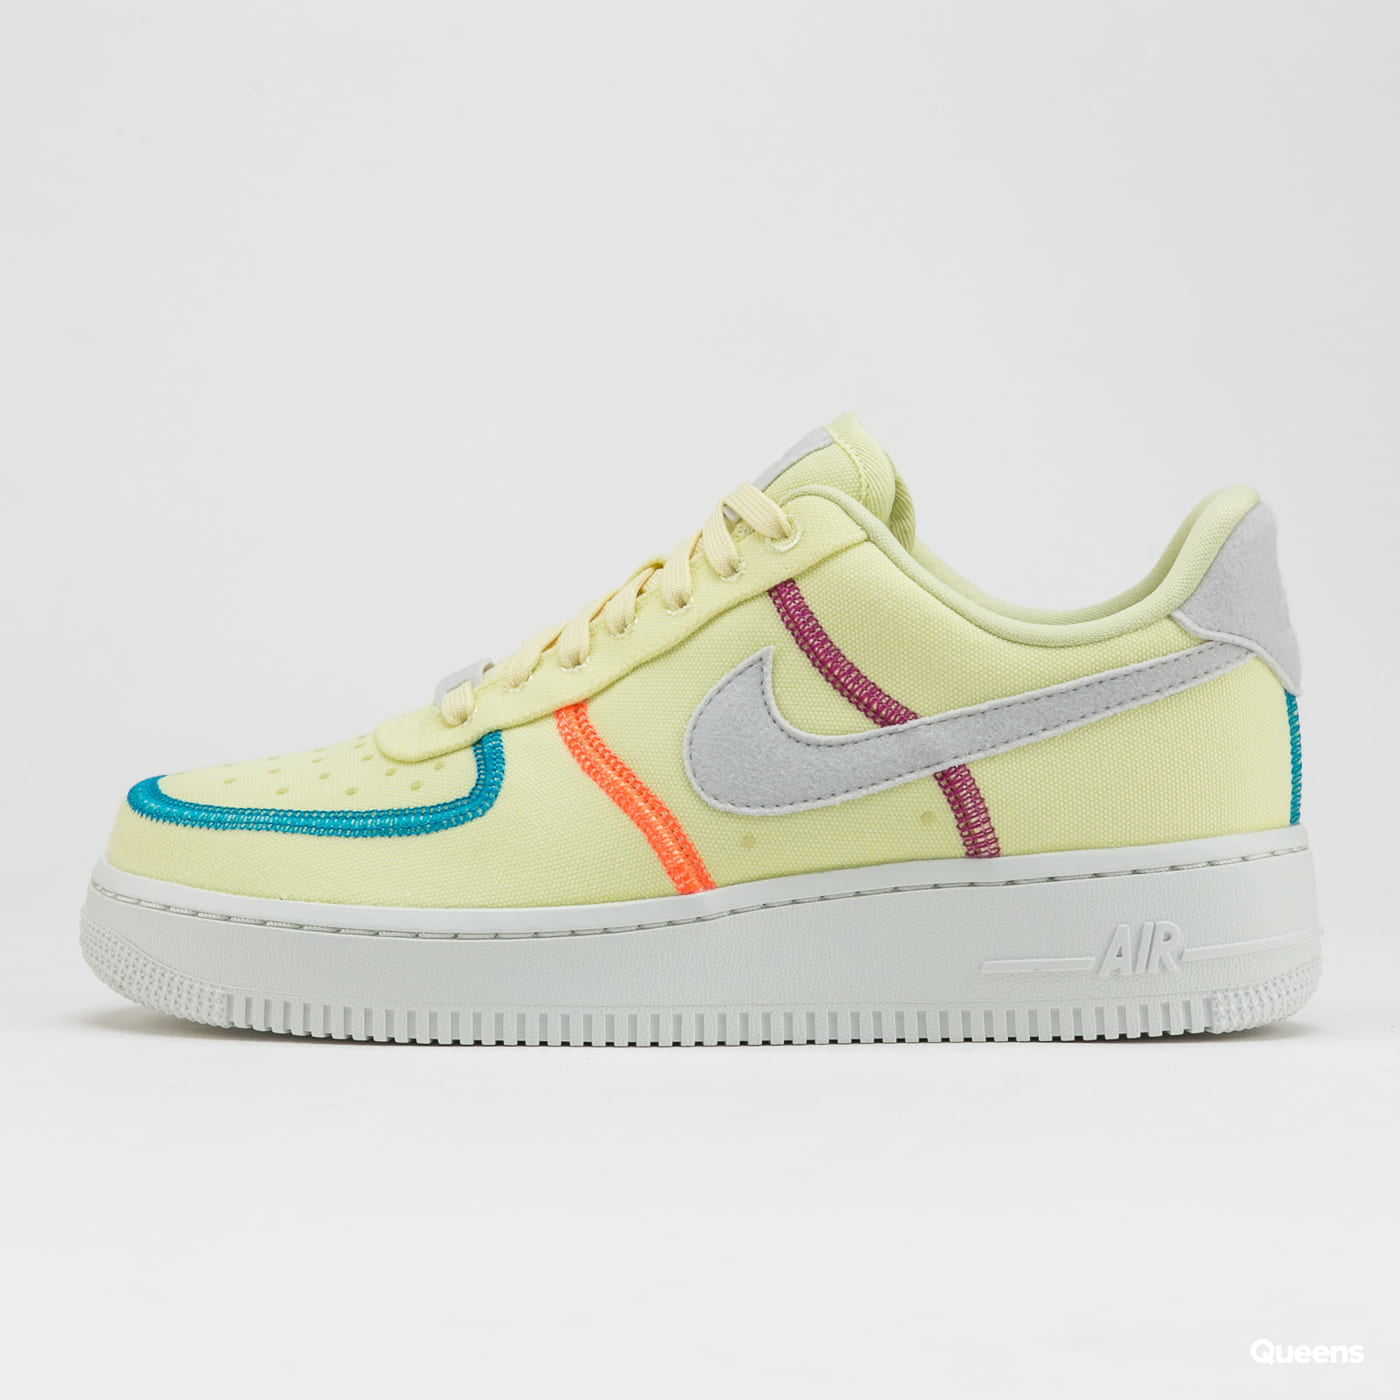 Nike WMNS Air Force 1 '07 LX life lime / photon dust